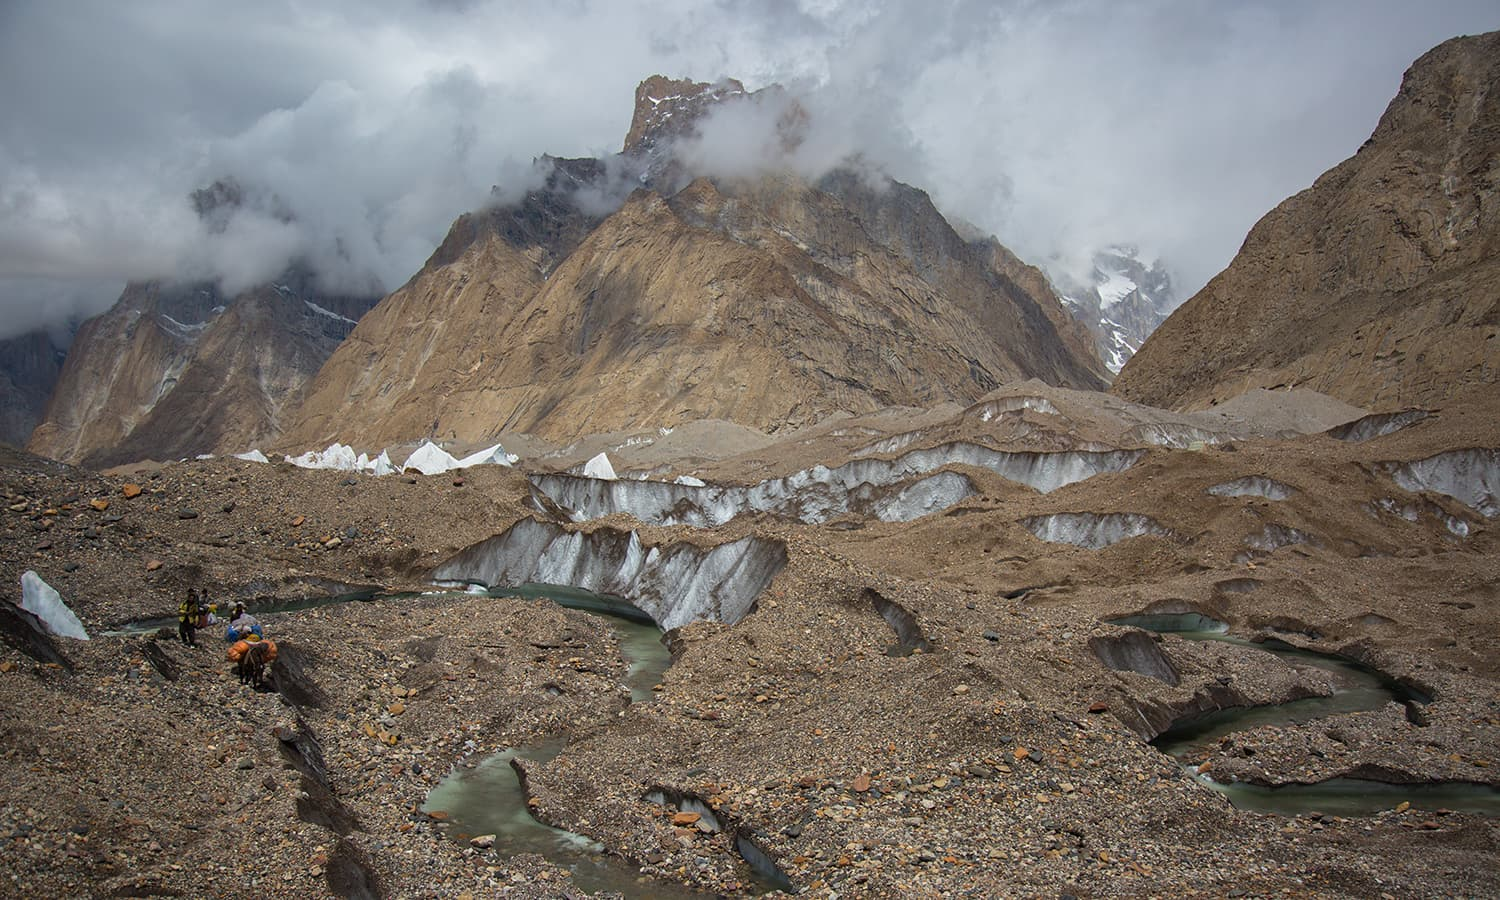 The labyrinth of crevasses on Baltoro.